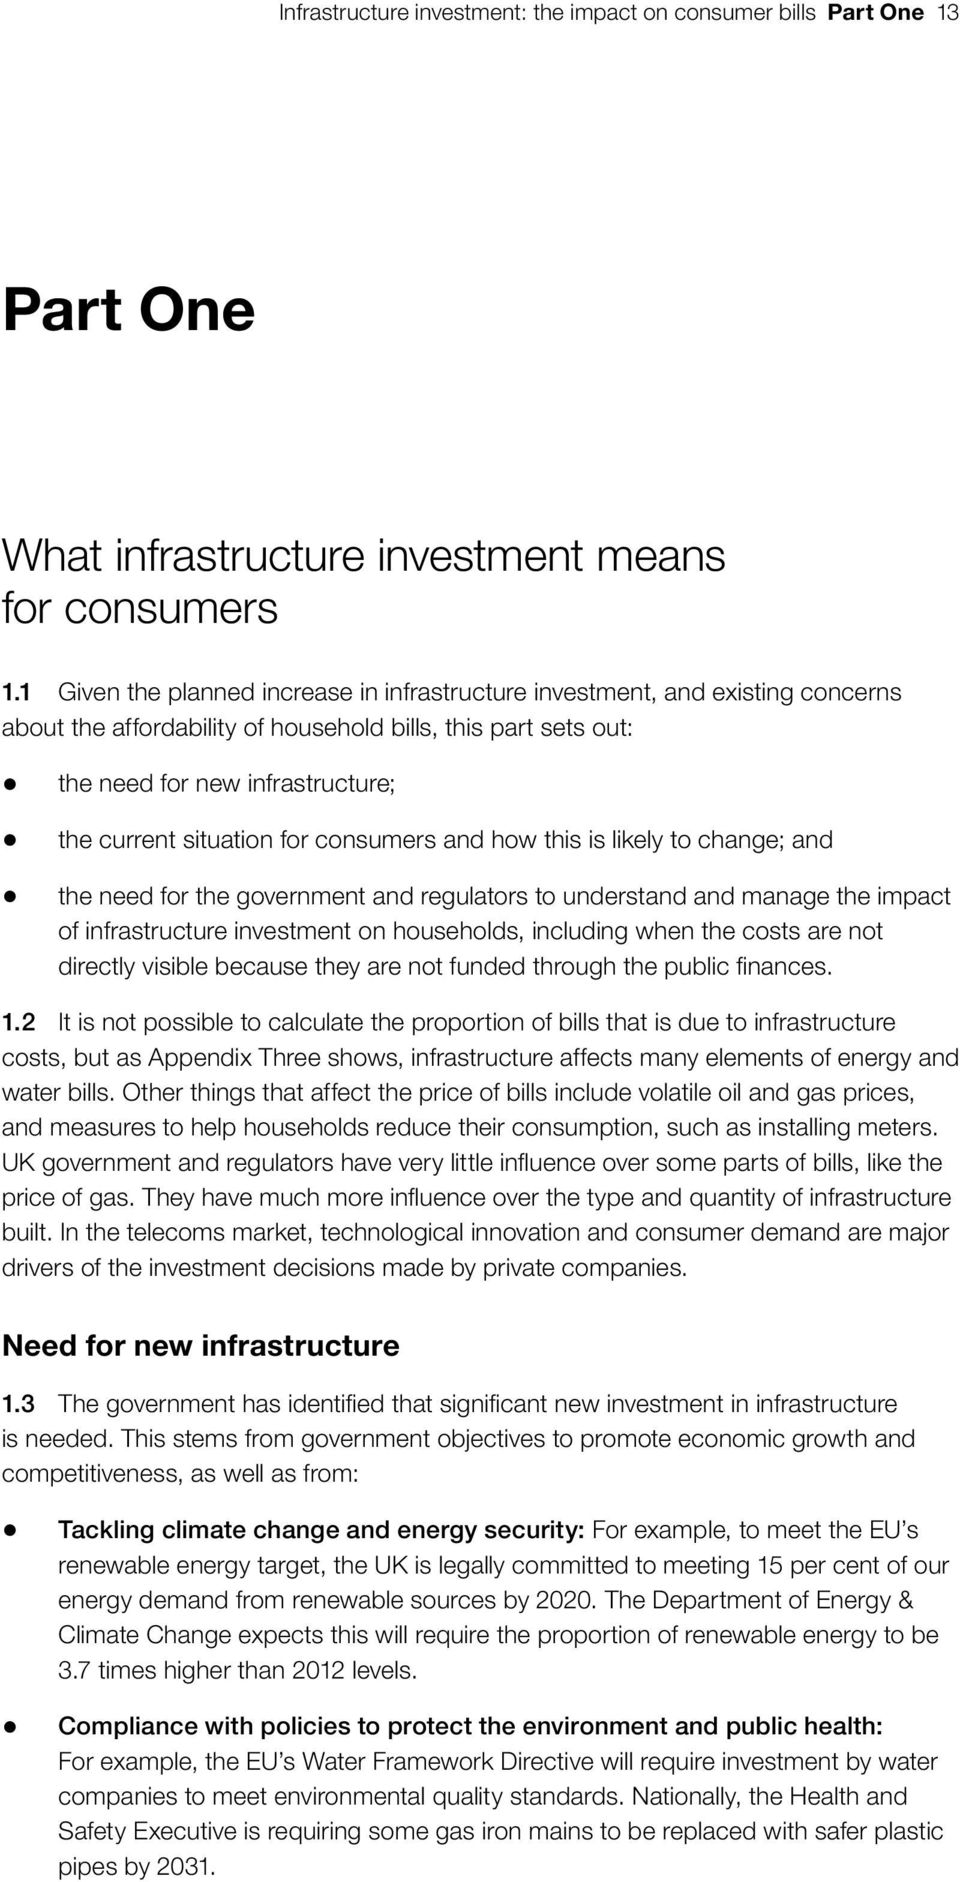 for consumers and how this is likely to change; and the need for the government and regulators to understand and manage the impact of infrastructure investment on households, including when the costs